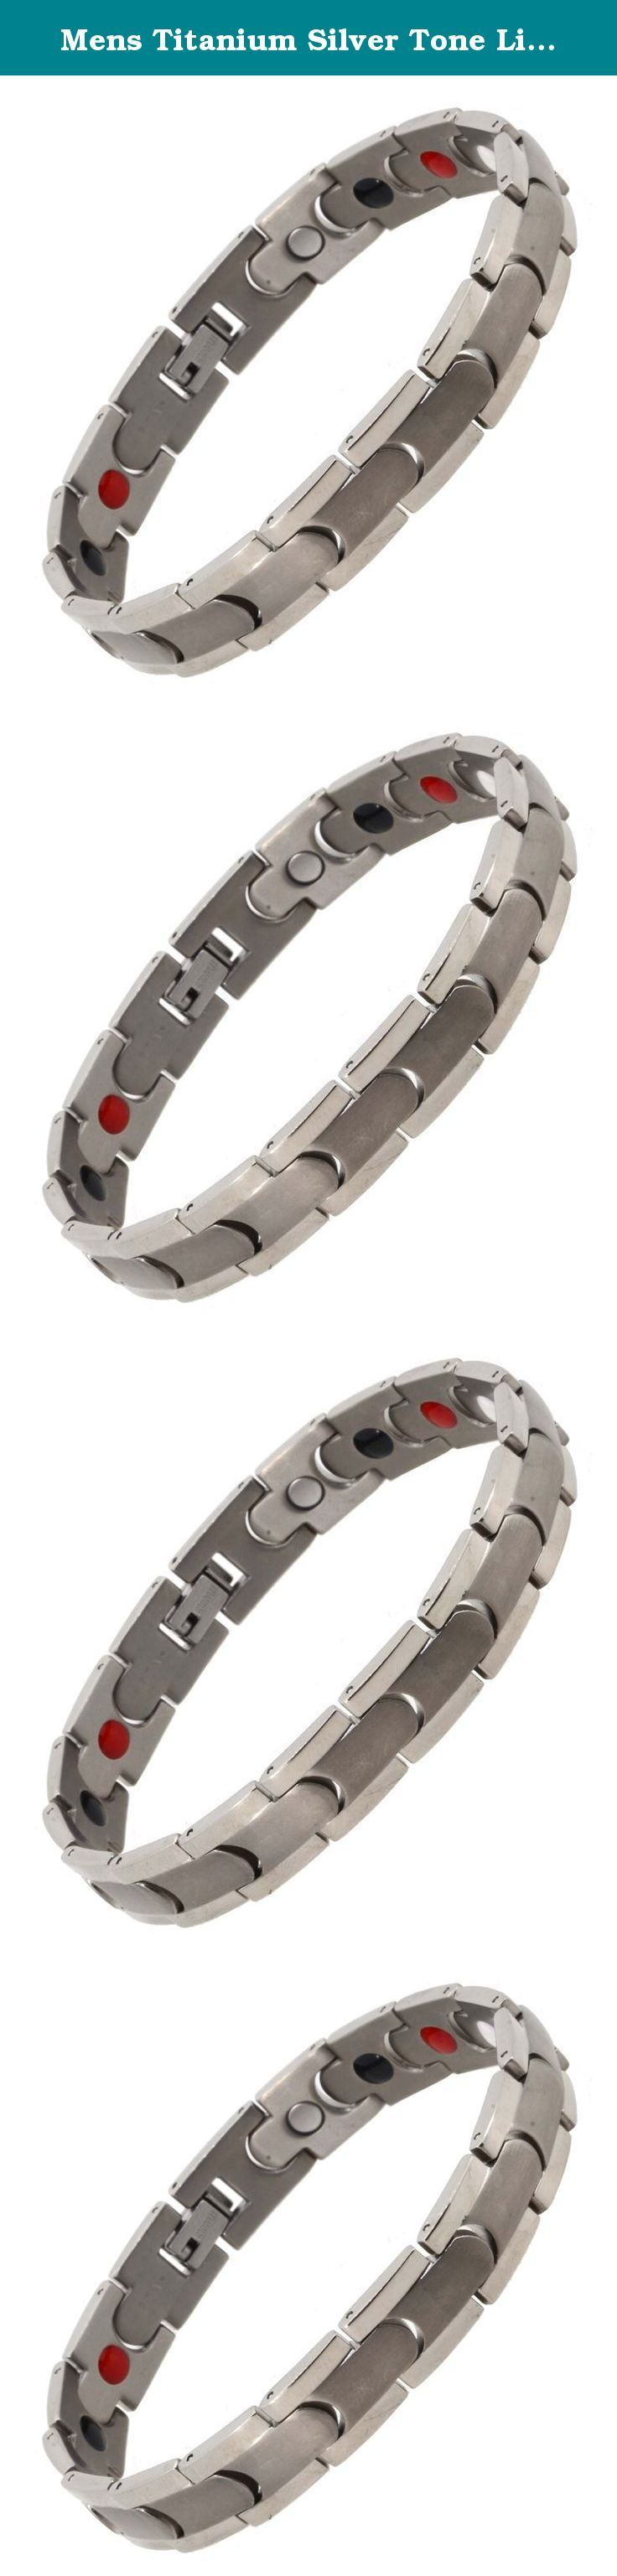 Mens Titanium Silver Tone Link Chain Extra Strong Magnetic Bracelet (Gray). Titanium is a very light but strong metal. The main difference from titanium and stainless steel is its light weight. There are magnets on the back of the bracelet. This bracelet should be kept away from pacemakers. This link chain titanium metal bracelet is a great and thoughtful gift for a boy or man. The bracelet is gift-packed individually. A titanium bracelet is a nice yet manly piece of jewelry, which is…